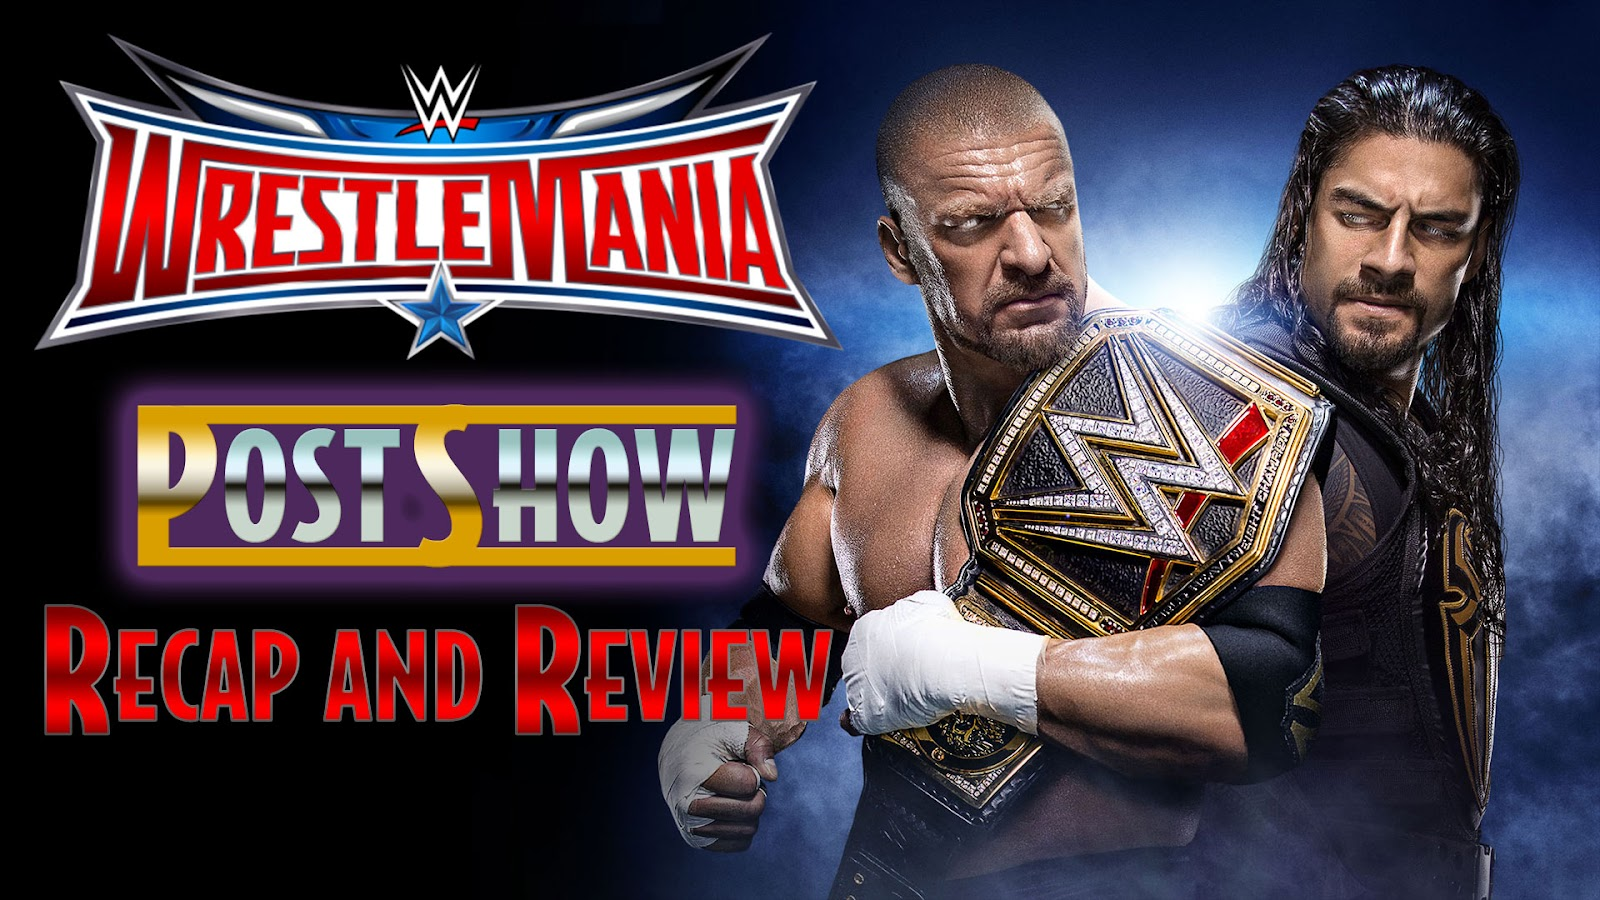 WWE WrestleMania 32 Recap and Review Podcast